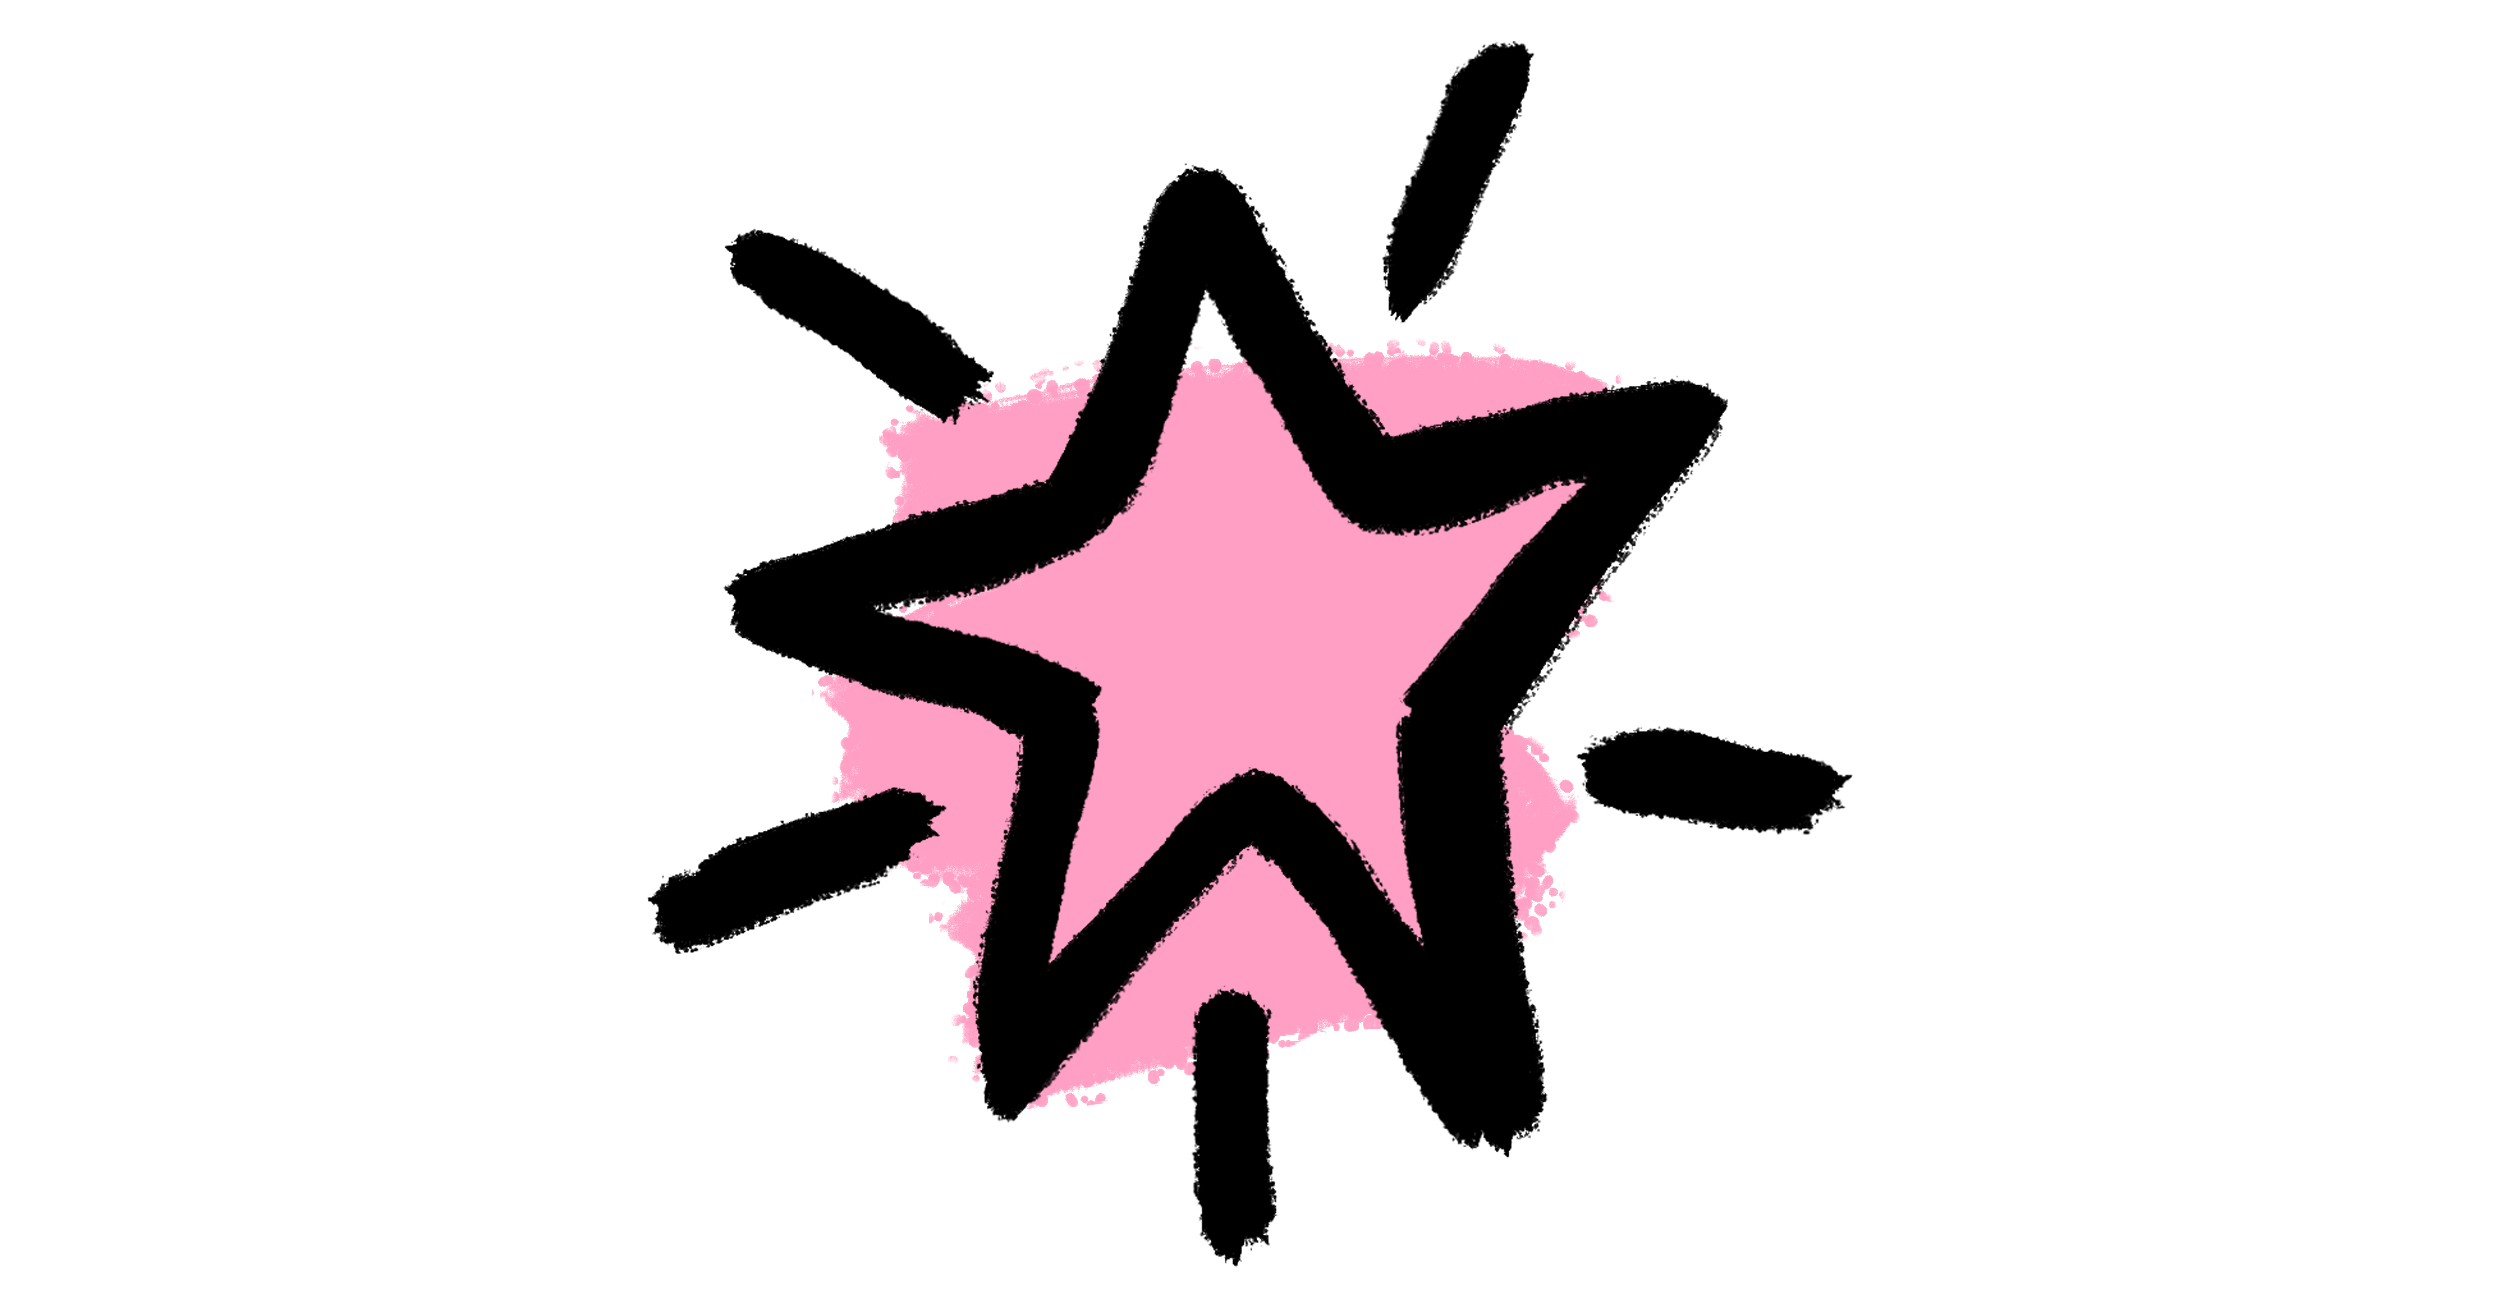 ProjectPose_WEBSITE_Icons_Brush_withColor_Star_01.png